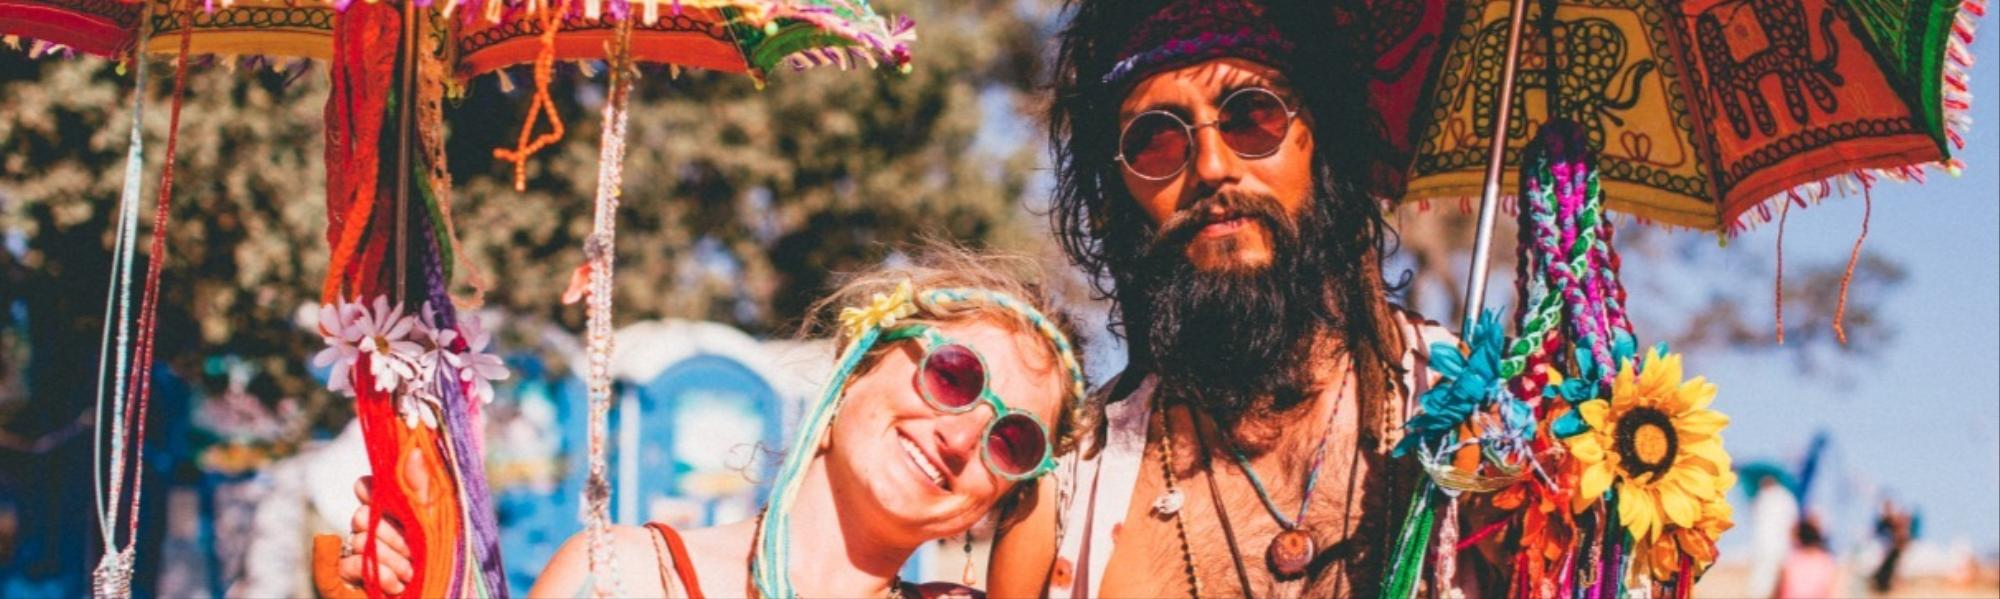 We Asked the Hippies at Lightning in a Bottle What Being a Hippie Is All About